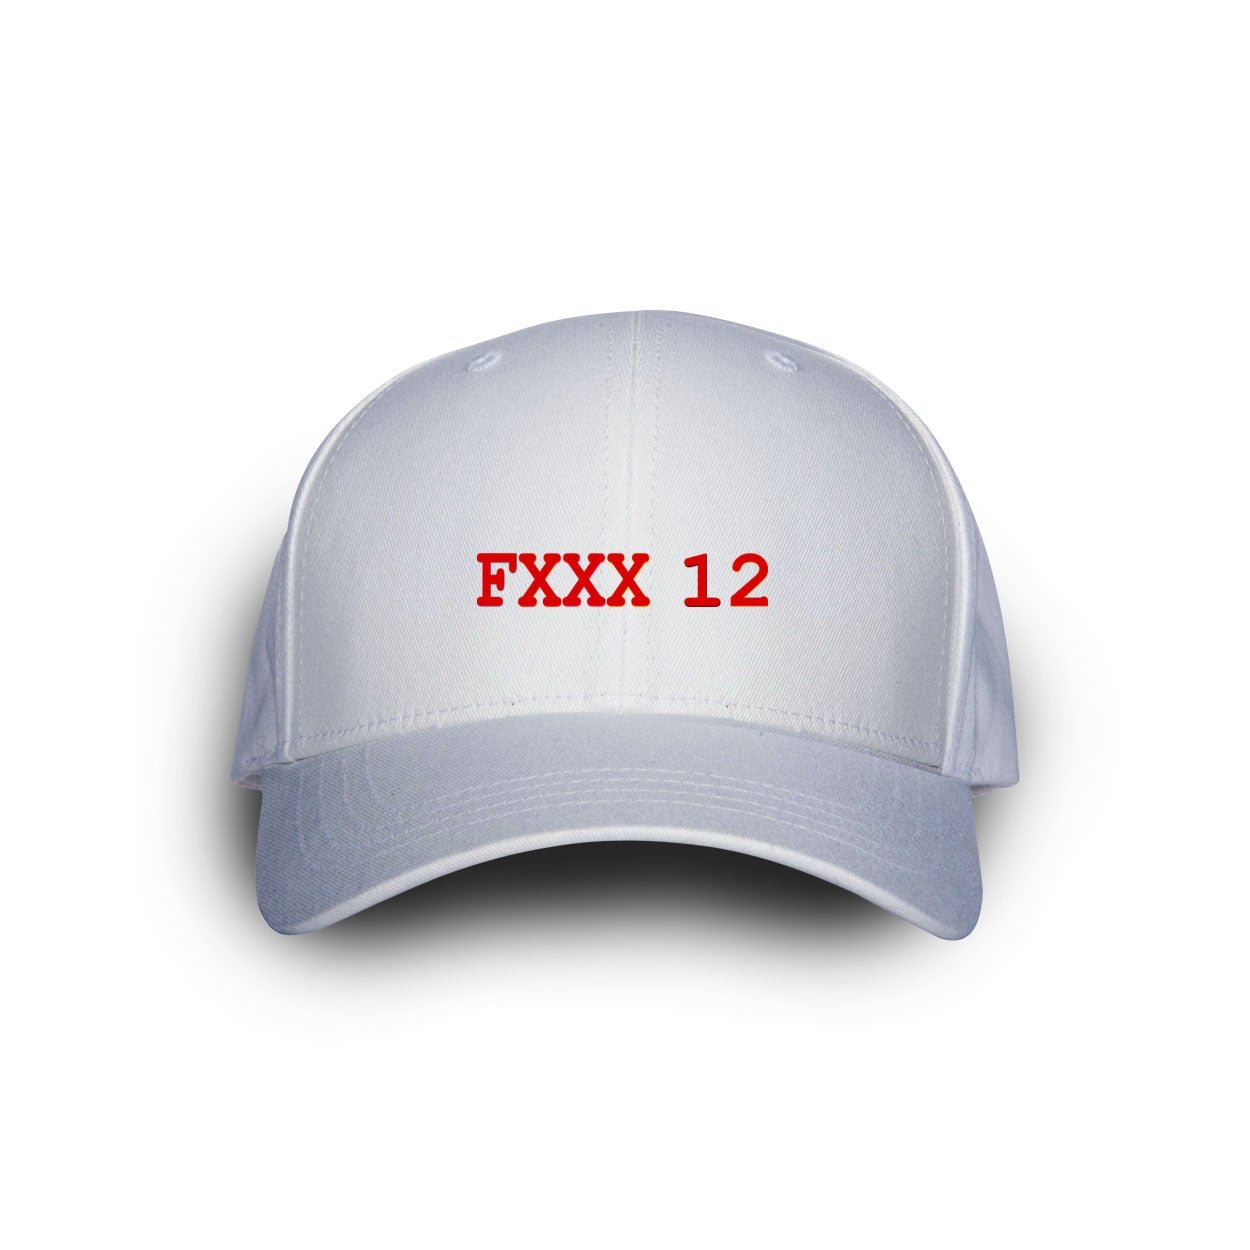 Image of Fxxx 12 Dad Cap White with Red